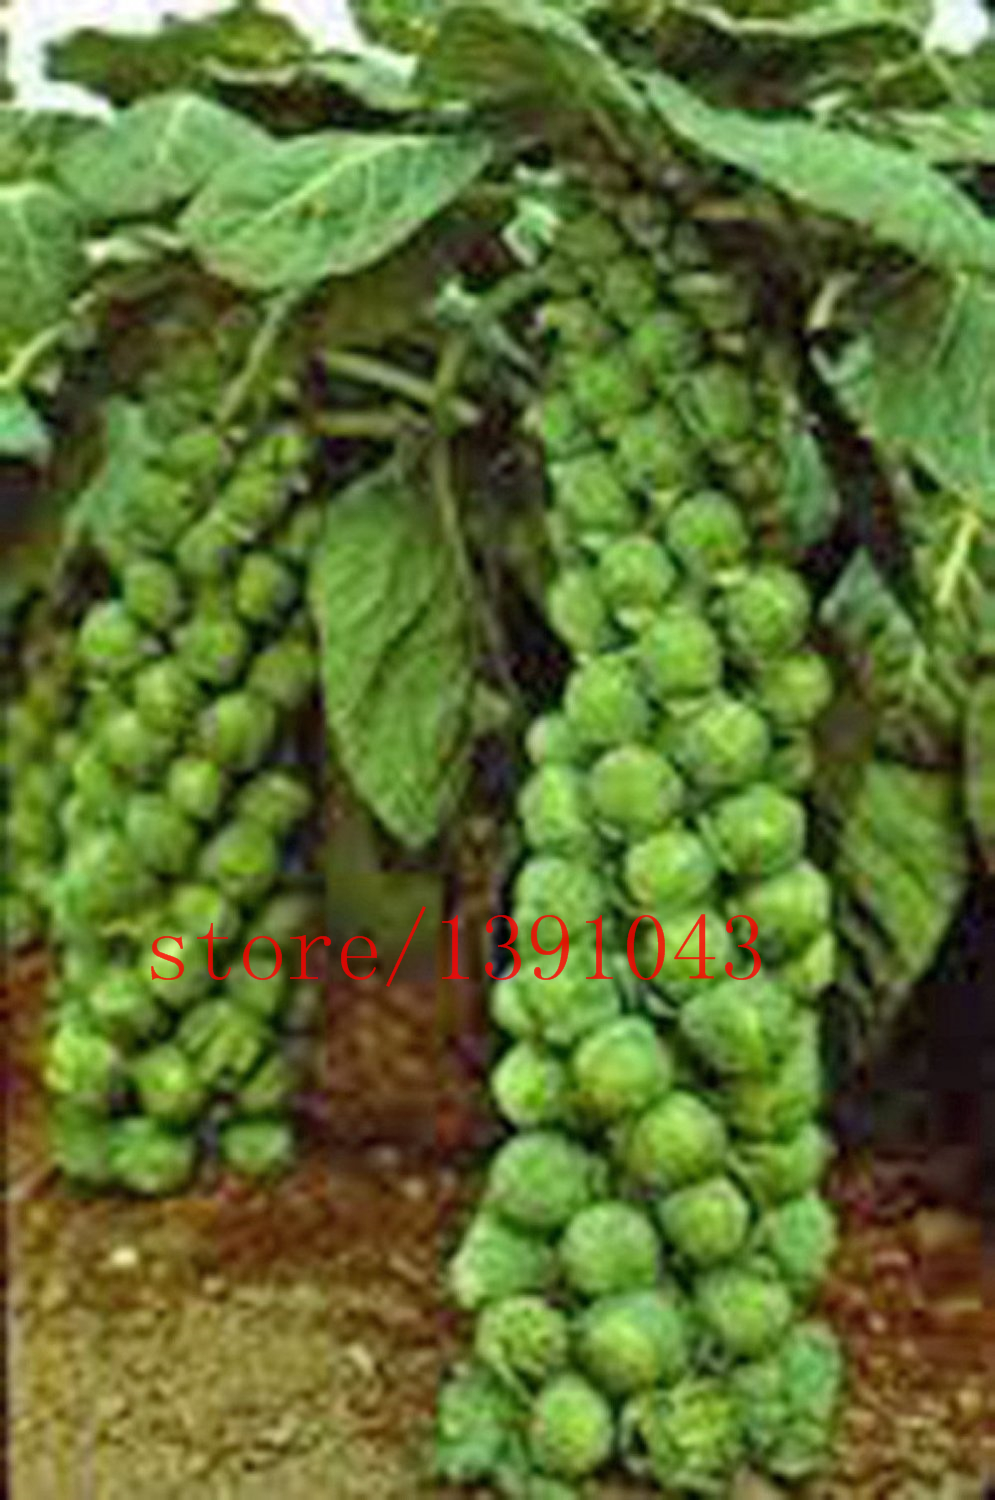 200pcs bag mini cabbage seeds Brussel Sprouts Seed  Long Island  Heirloom   Organic  Non GMO vegetable seeds for home   garden in Bonsai from Home    Garden. 200pcs bag mini cabbage seeds Brussel Sprouts Seed  Long Island